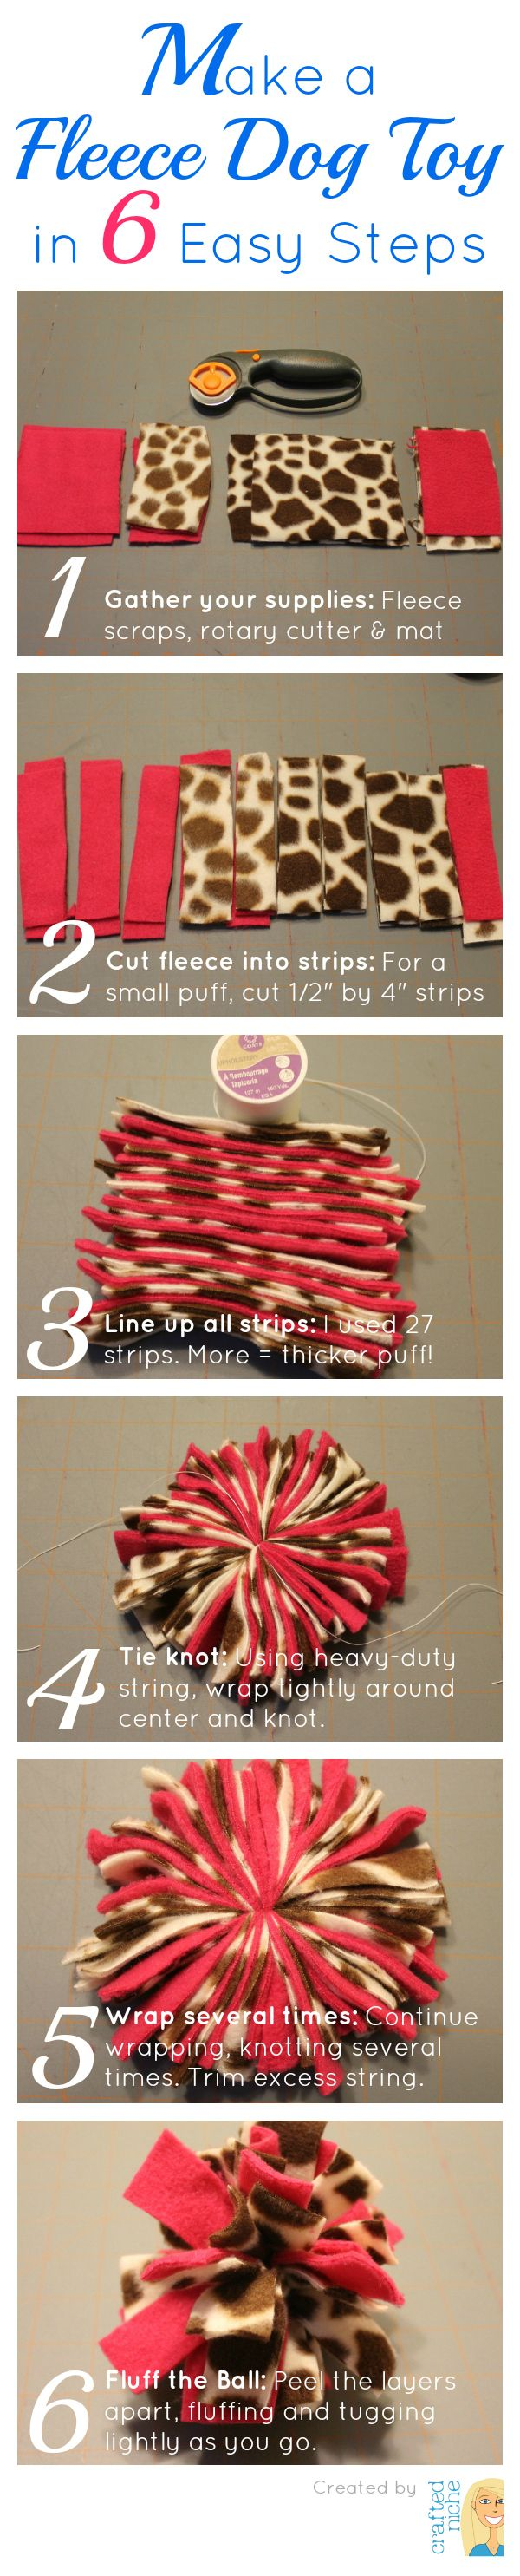 Make Your Own Fleece Puff Ball Dog Toy In 6 Easy Steps From